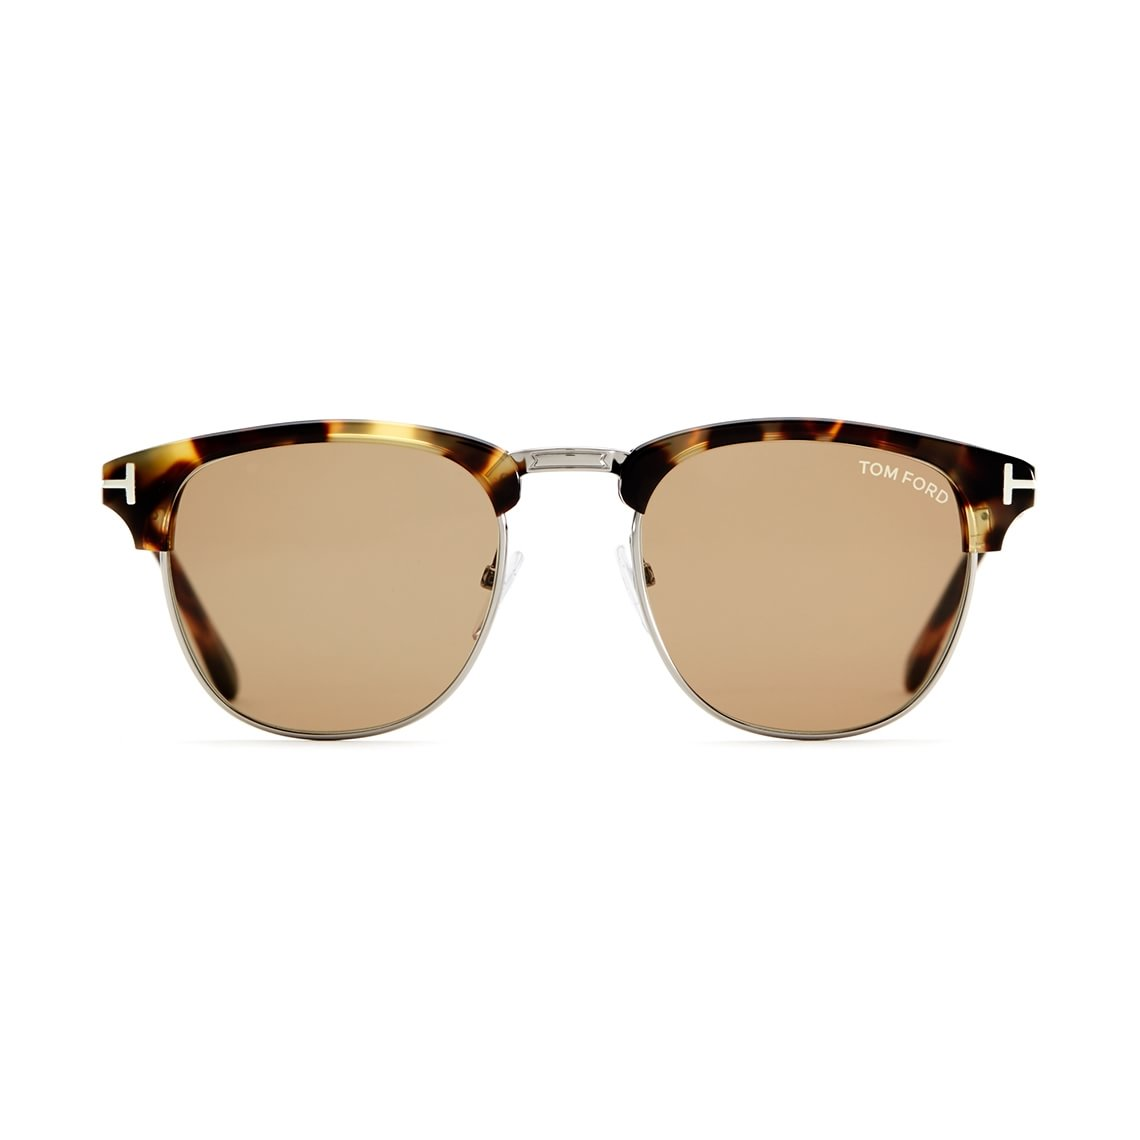 Tom Ford TF248 55J 51